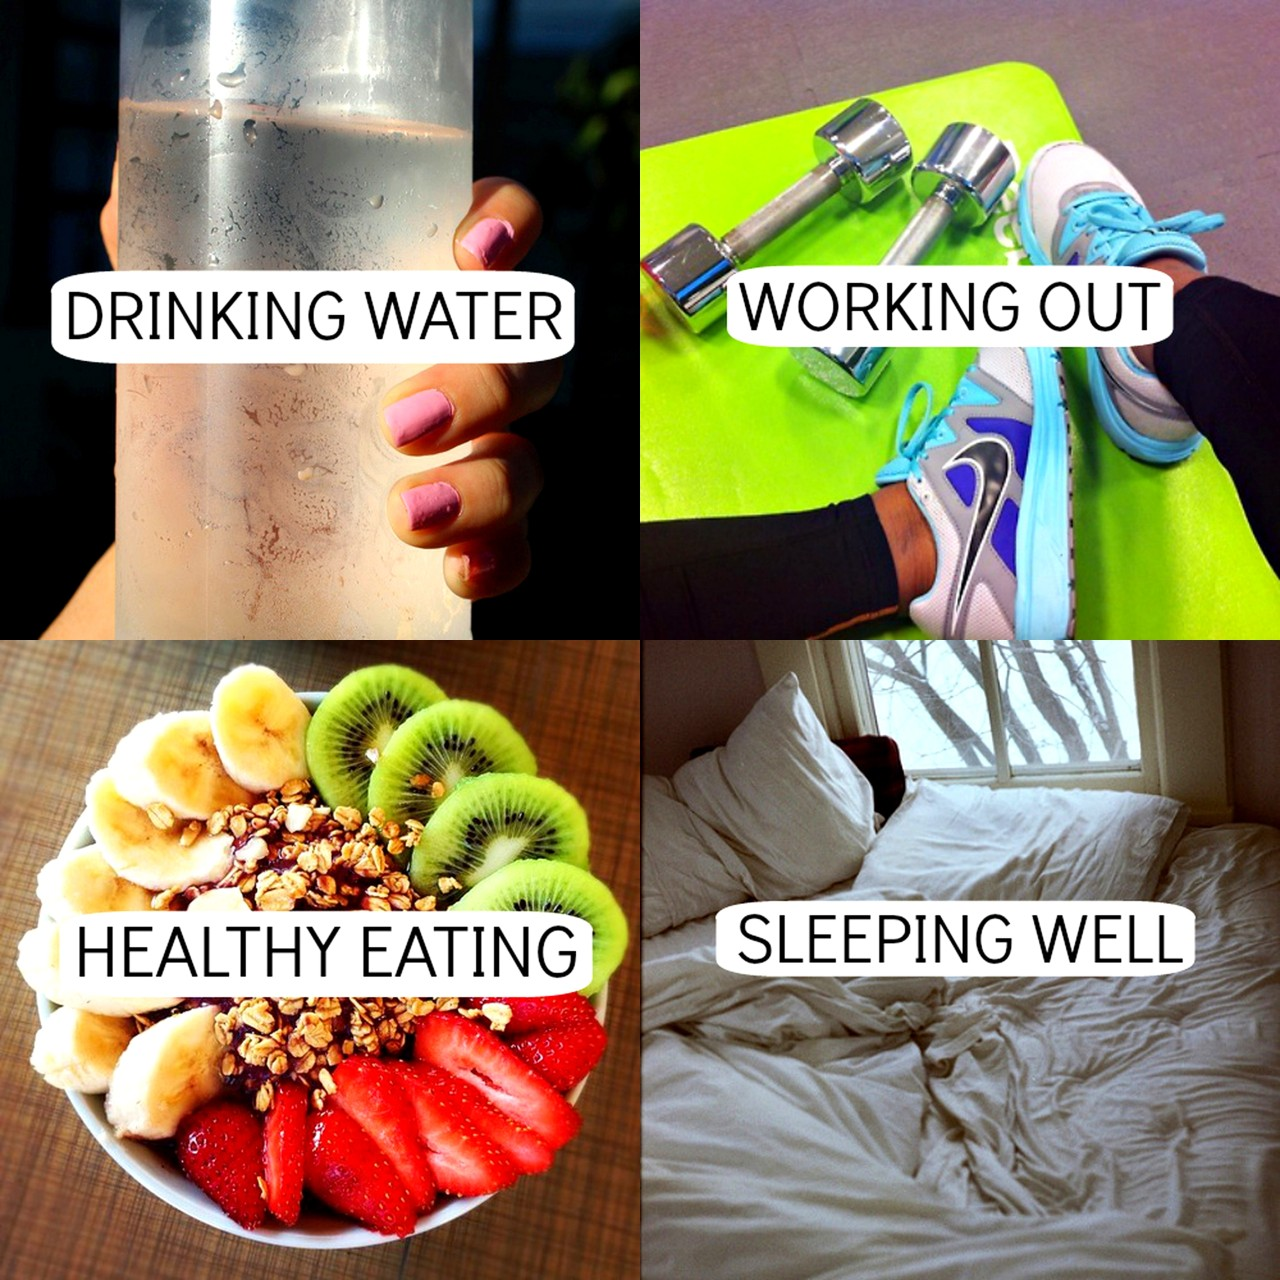 diet-andexercise:  I do everything except sleep well :(